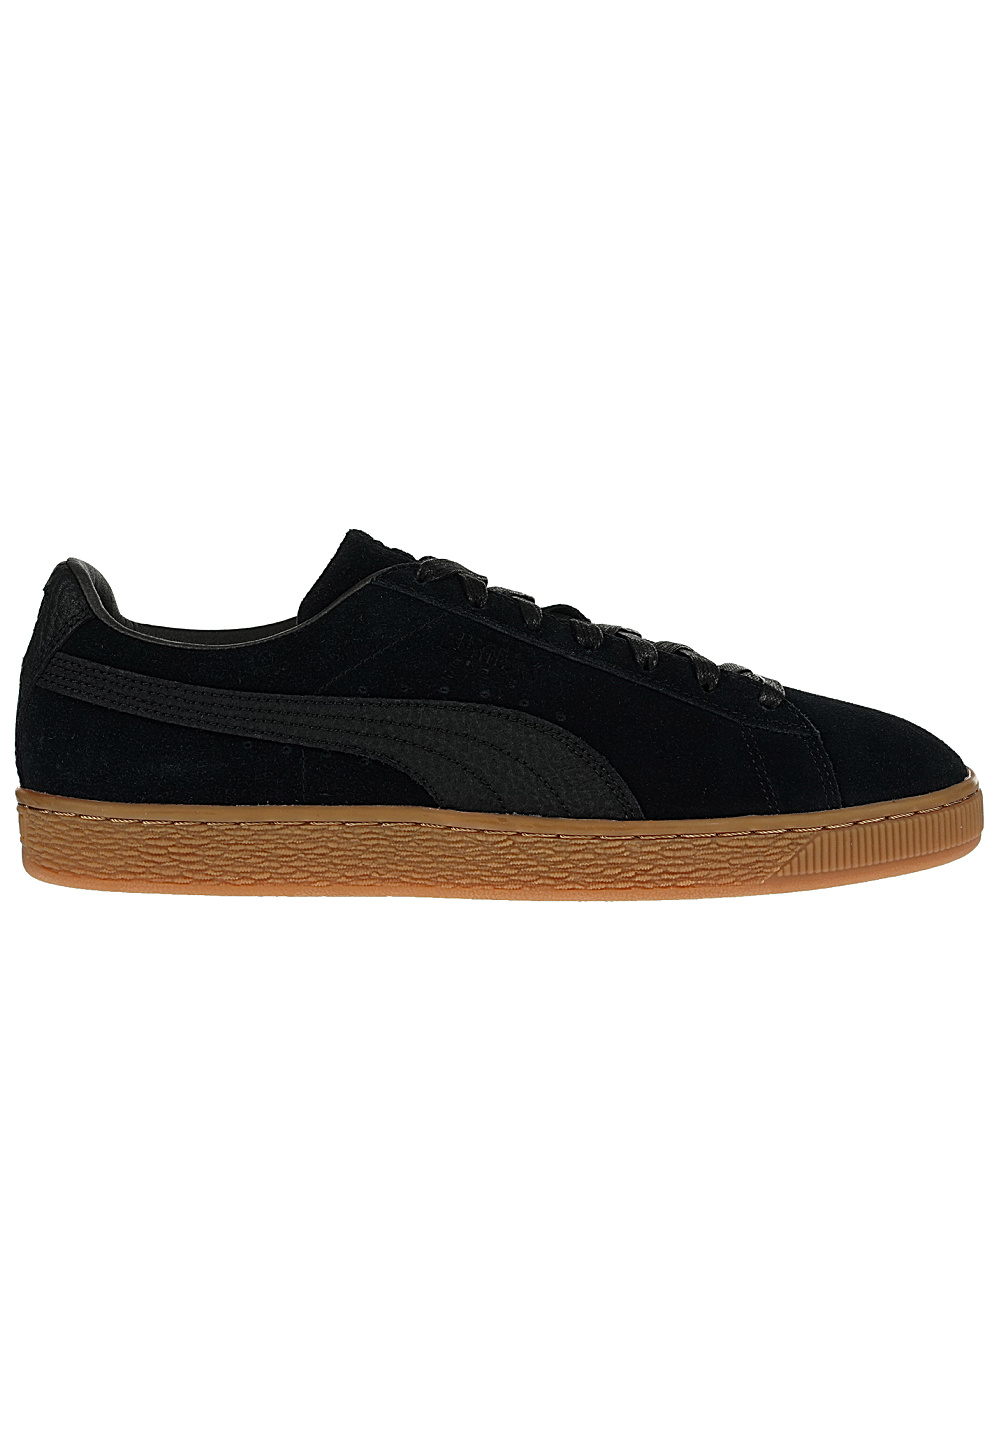 bf6b702363d Next. -20%. This product is currently out of stock. Puma. Suede Classic  Natural Warmth ...